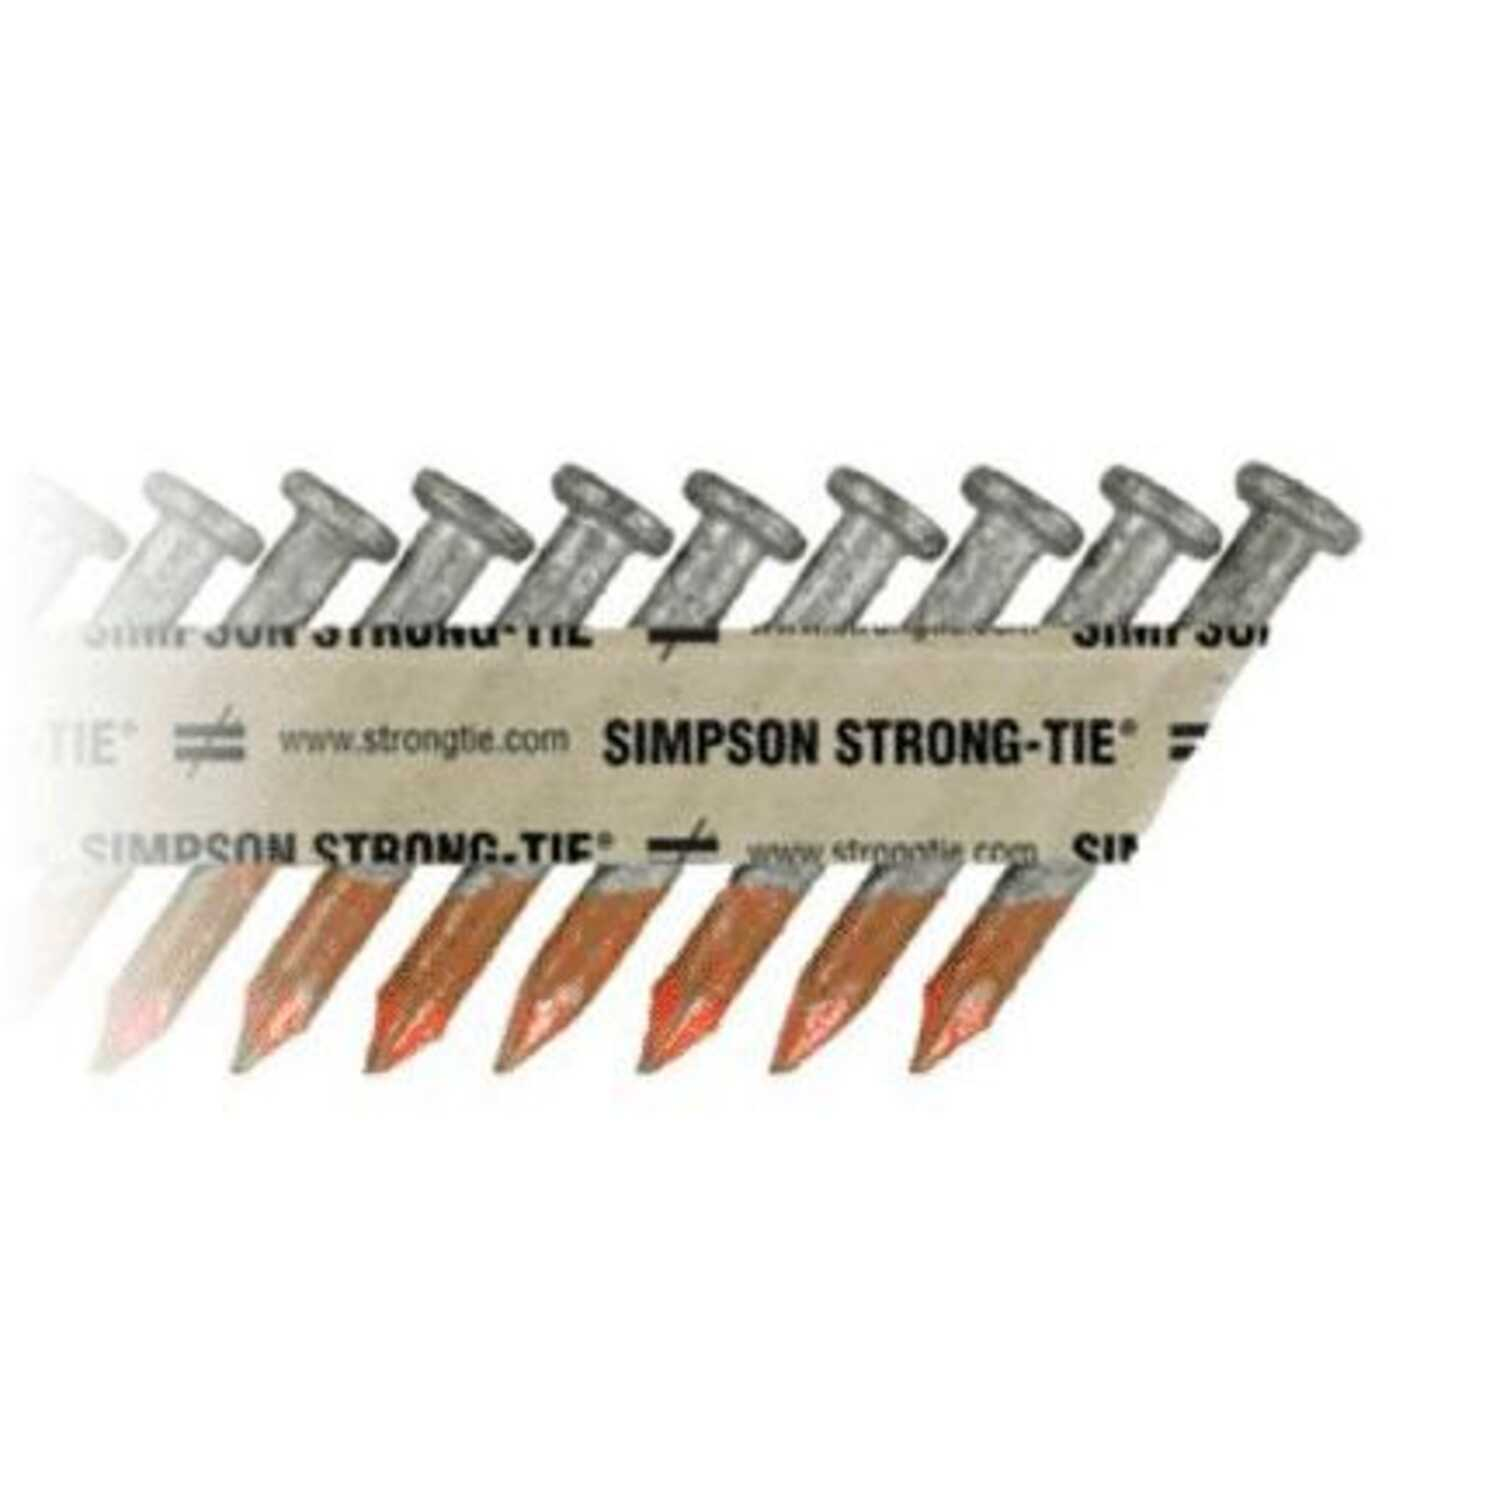 Simpson Strong-Tie  10D  1-1/2 in. L Connector  Steel  Nail  Round Head Smooth Shank  500 pk 1 lb.